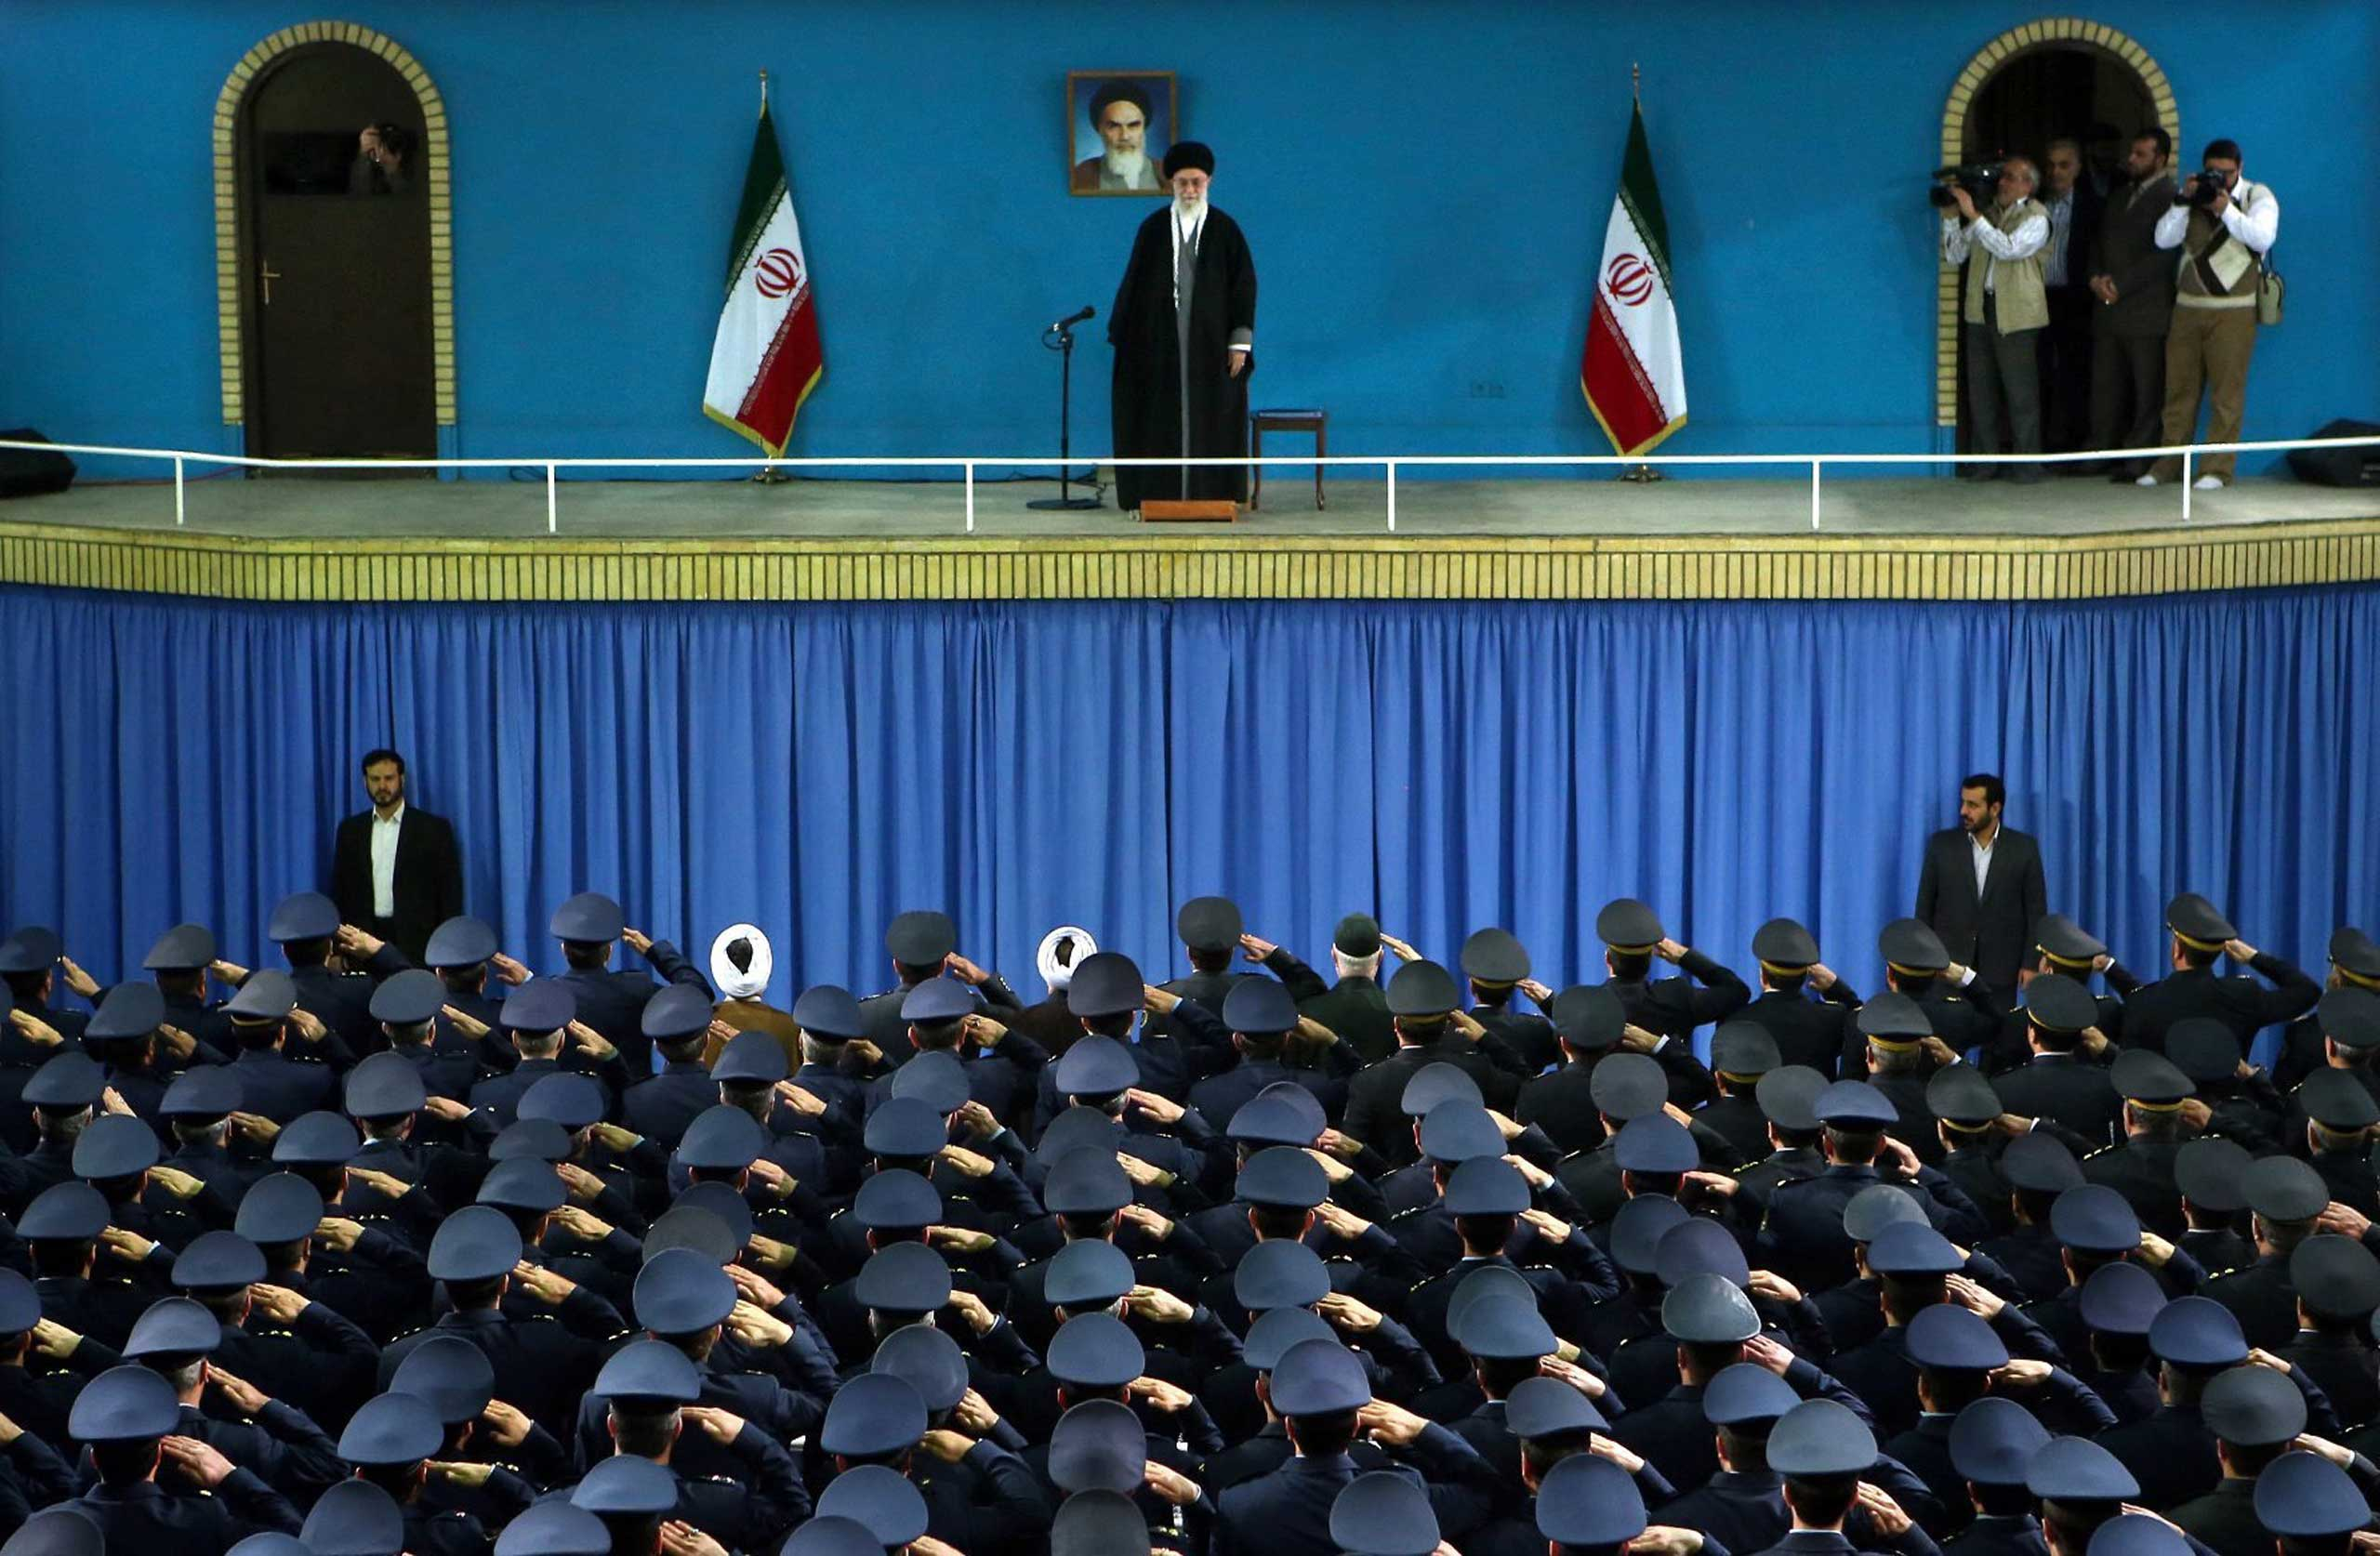 Army air force officers salute Supreme Leader Ayatollah Ali Khamenei during a ceremony in Tehran, Feb. 8, 2015.